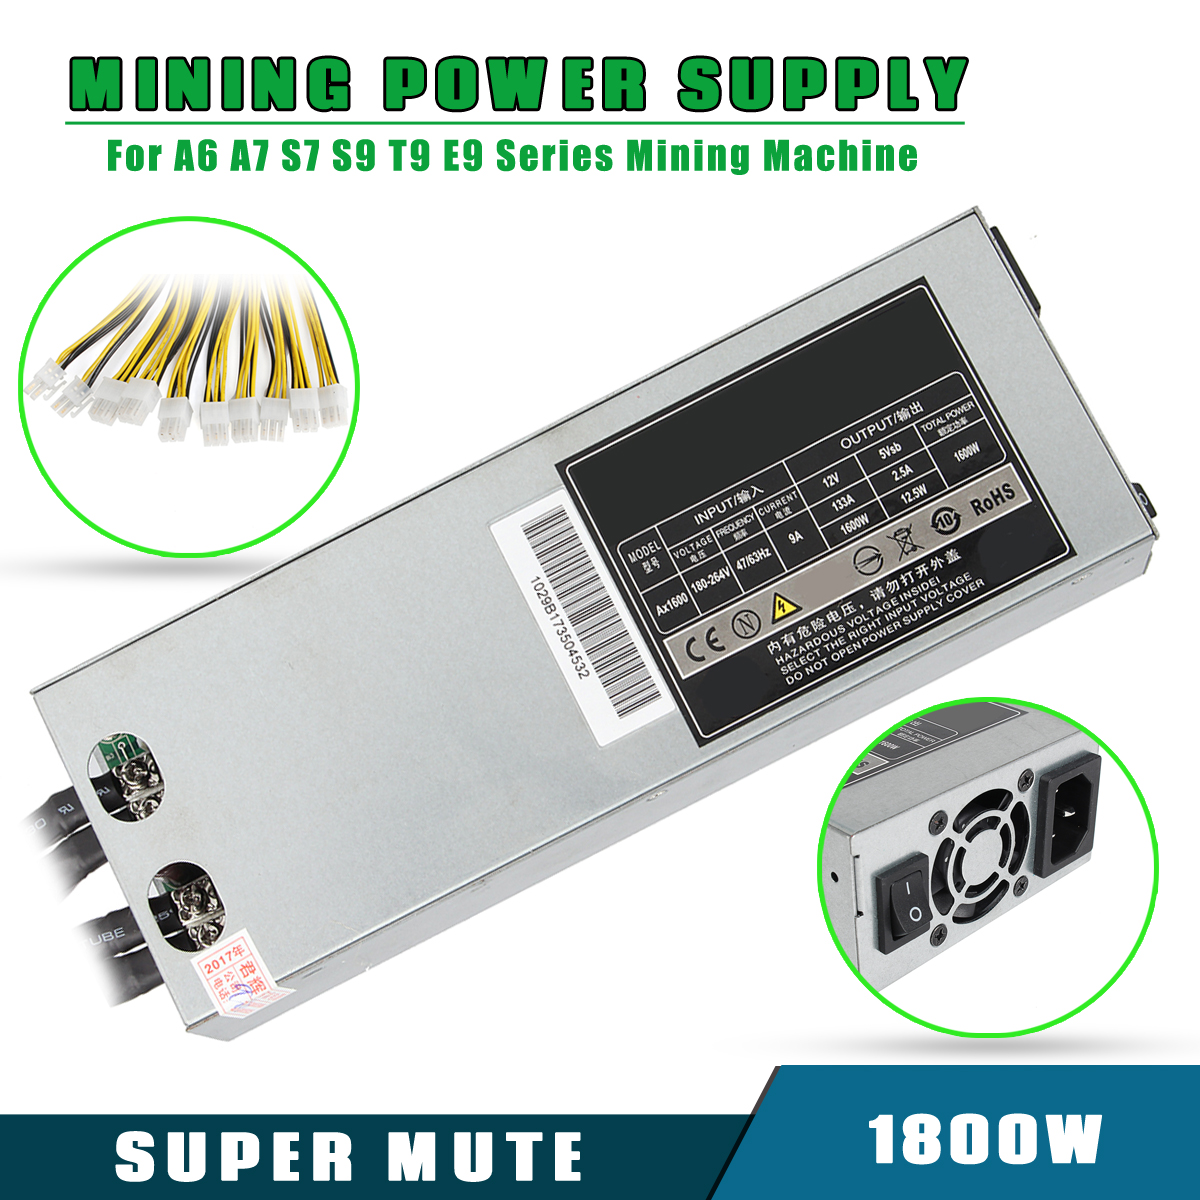 S SKYEE 1800W Power Supply For A6 A7 S7 S9 T9 E9 Series Mining Machine Computer Mining Power Supply With Cable For Miner Mining чехол сима ленд сегодня твой день 840284